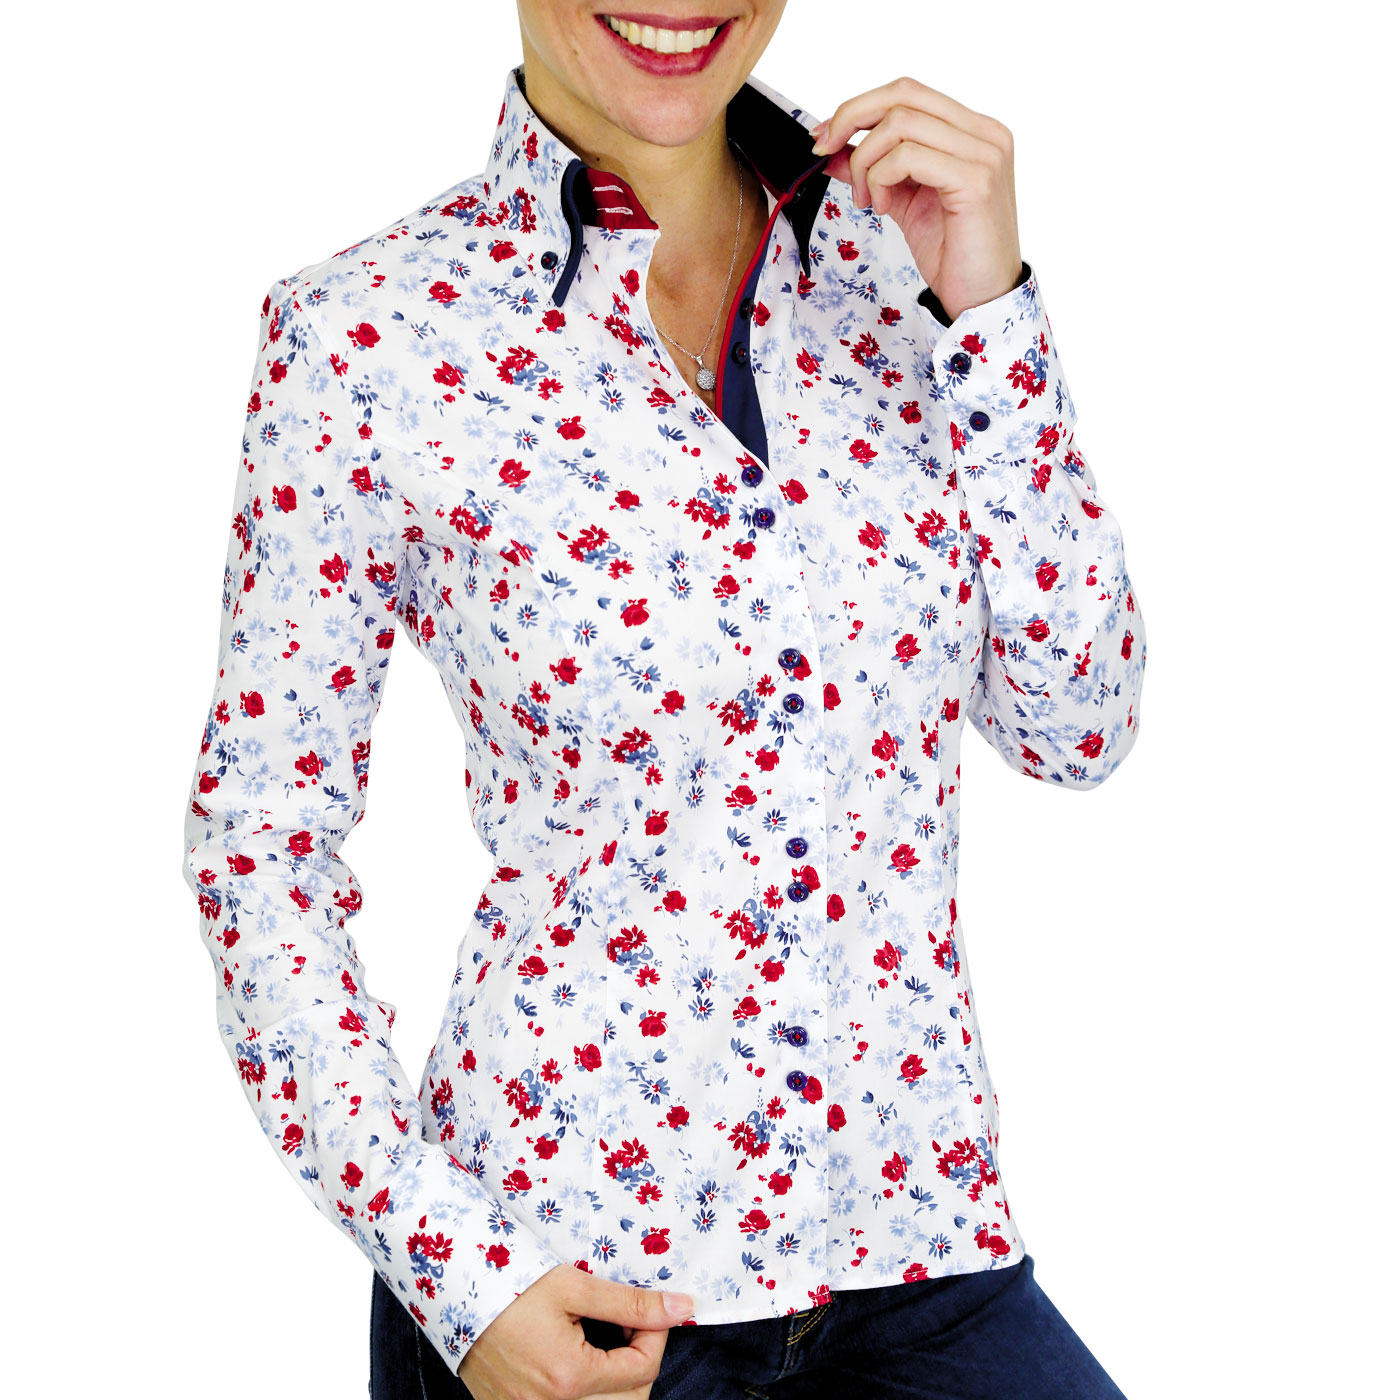 Printed woman's shirt